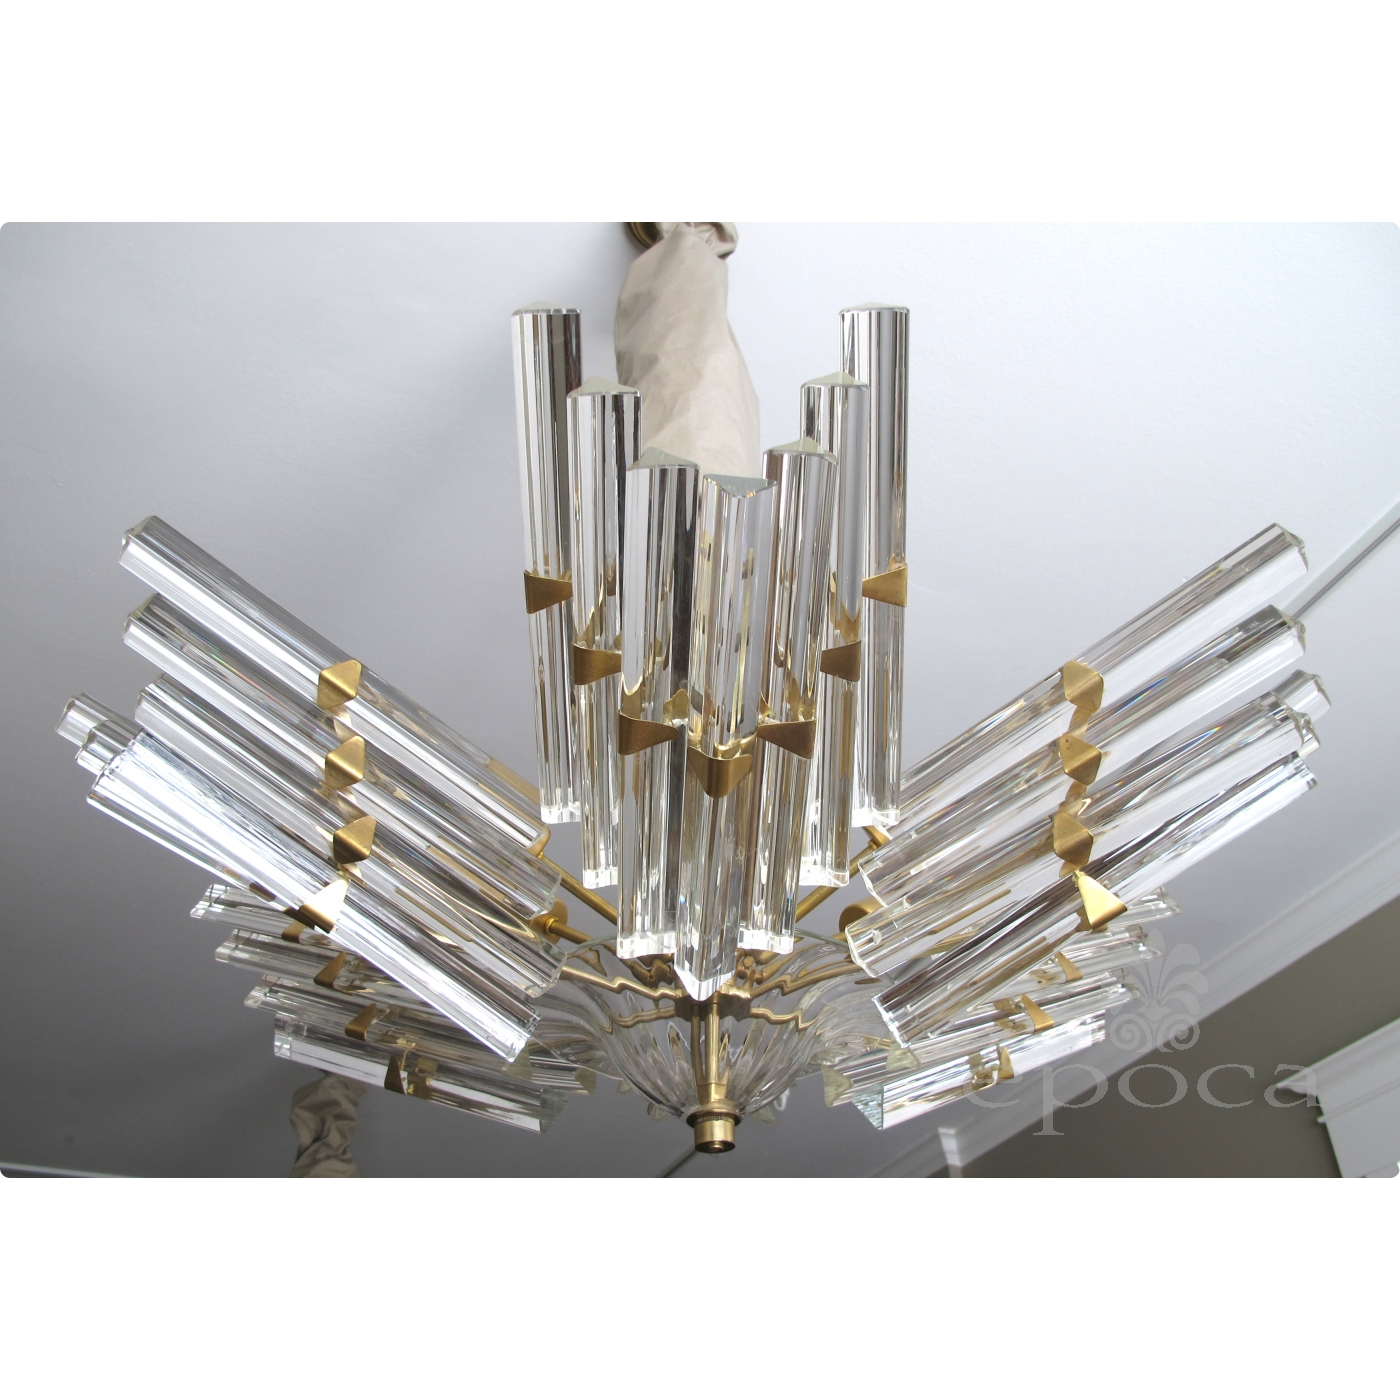 A shimmering and good quality camer flush mount chandelier with a shimmering and good quality camer flush mount chandelier with venini triedri glass arubaitofo Images